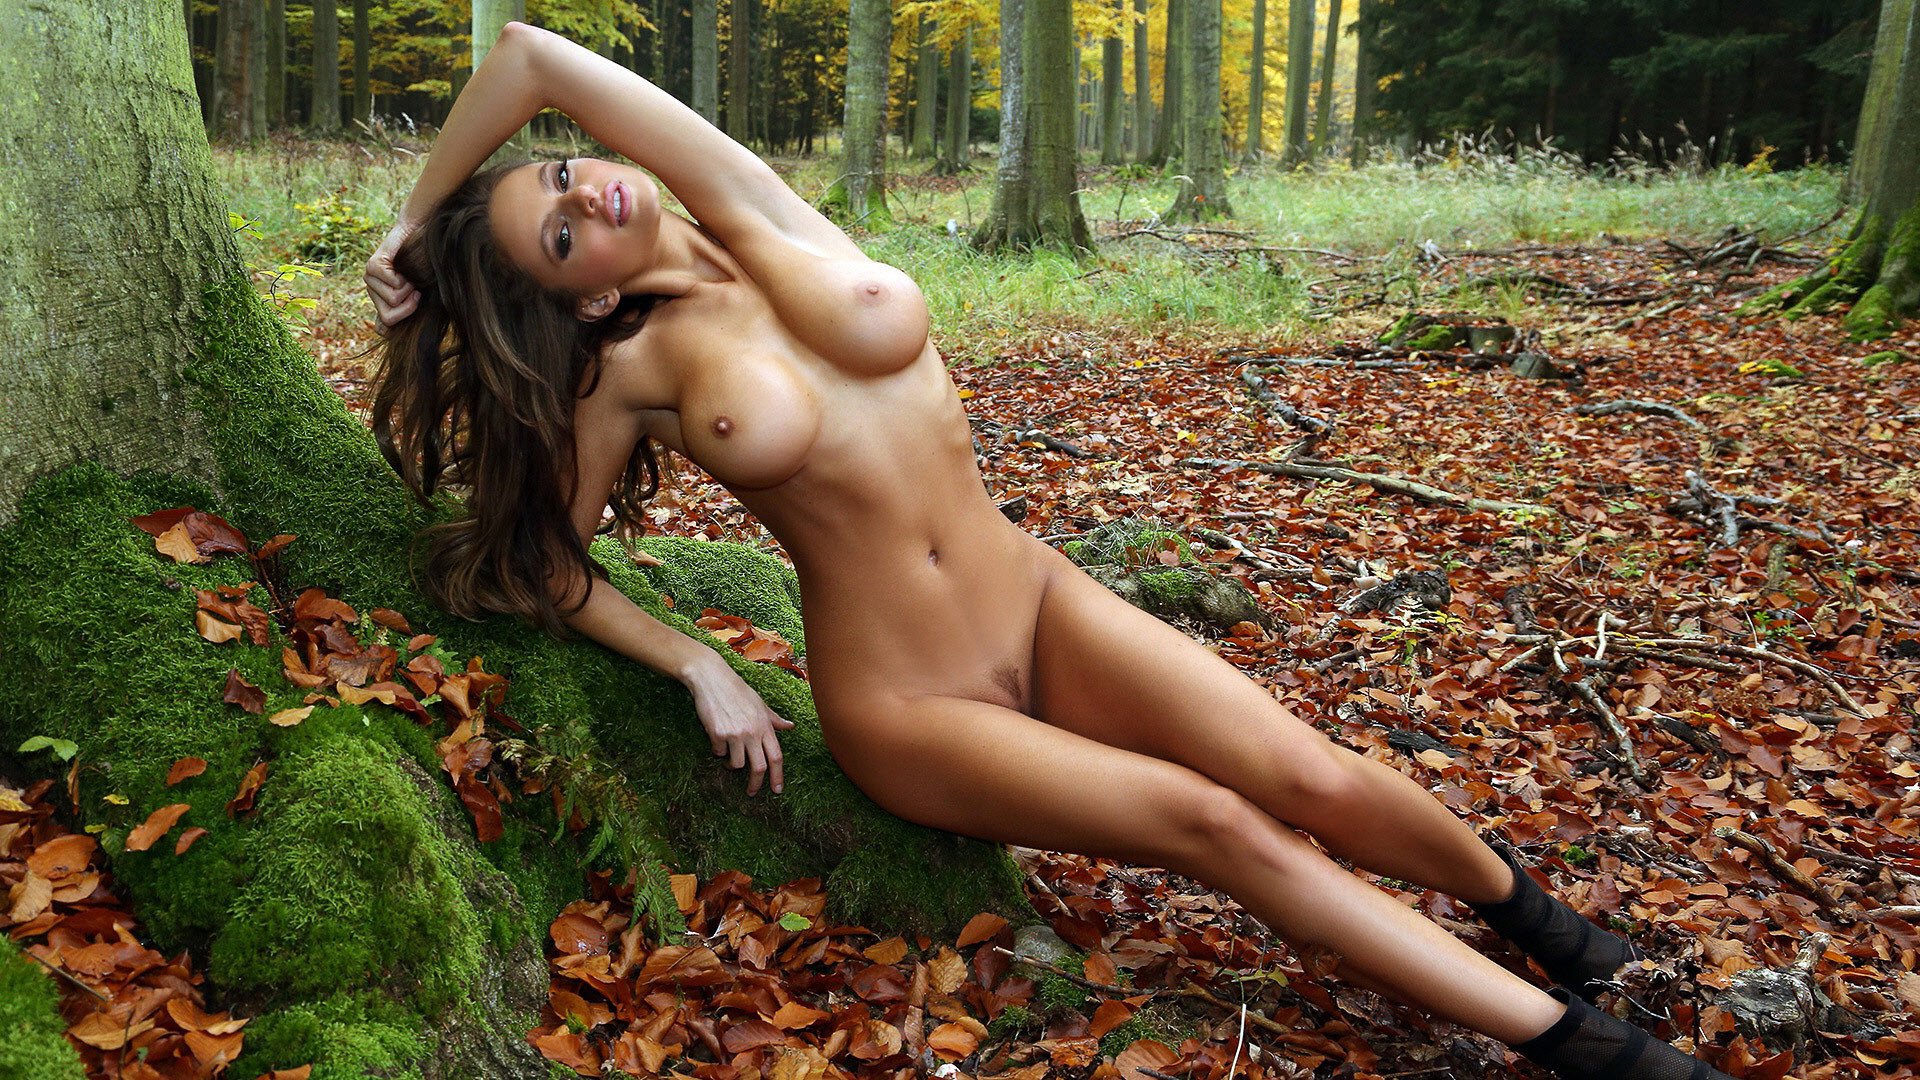 Hot girl nudes — 14